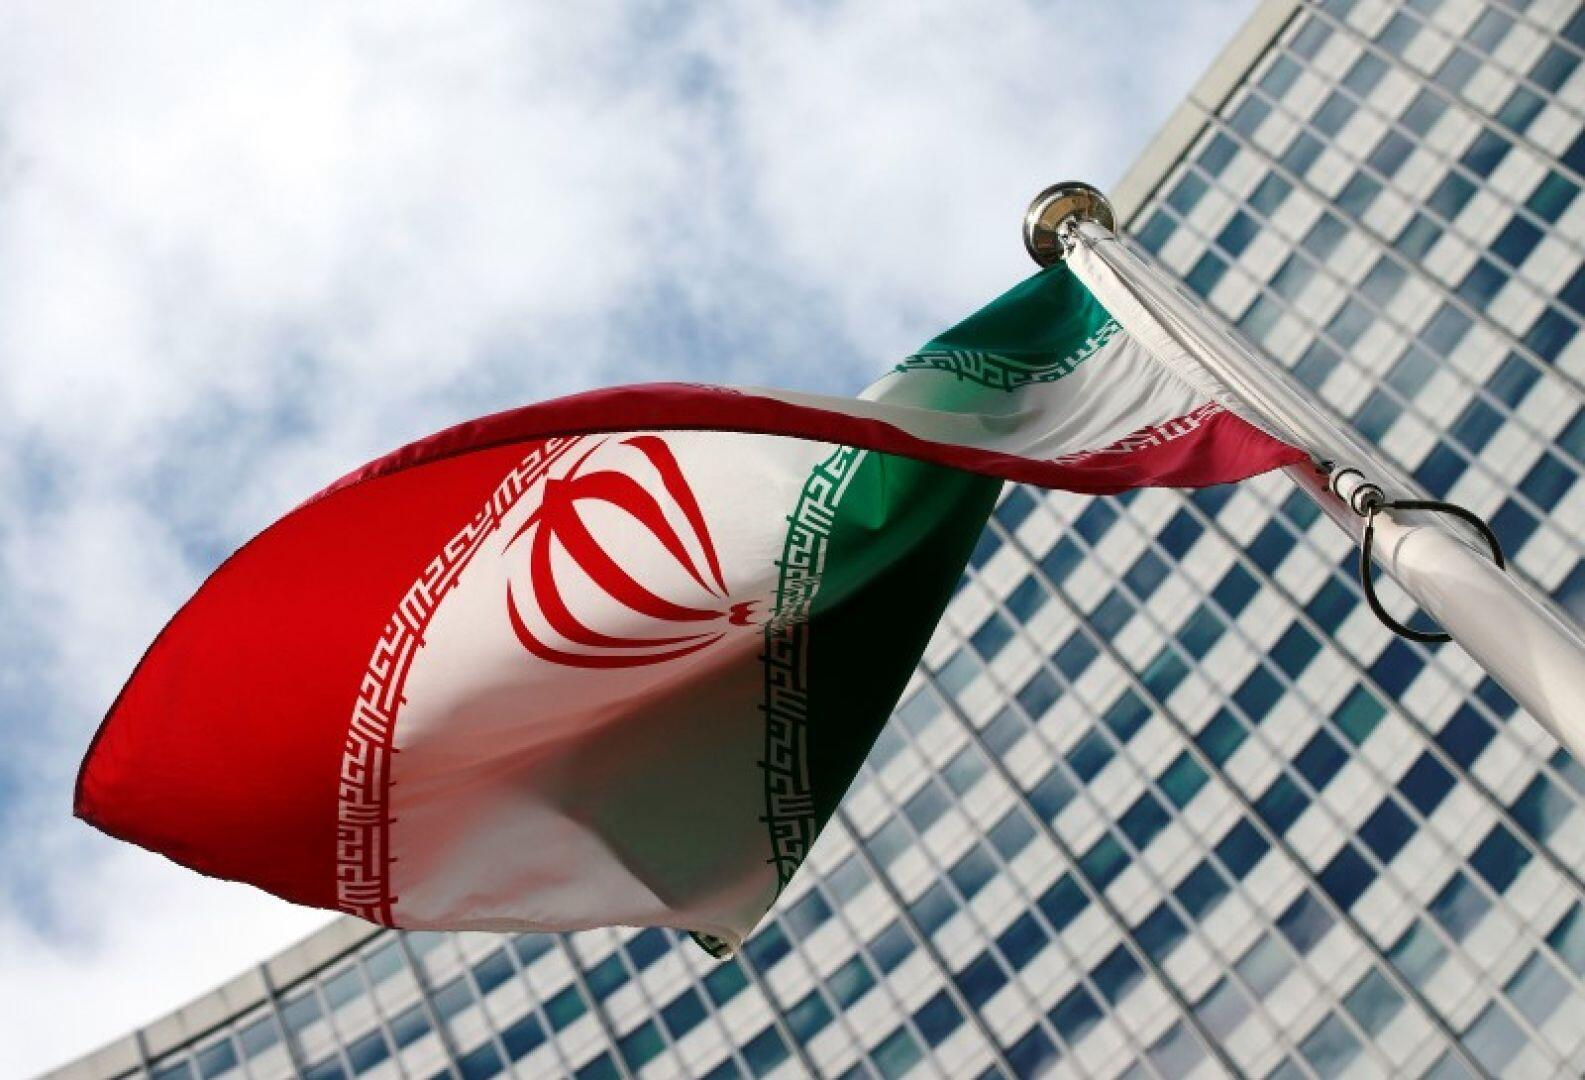 Iran's flag flying in front of the IAEA headquarters in Vienna.